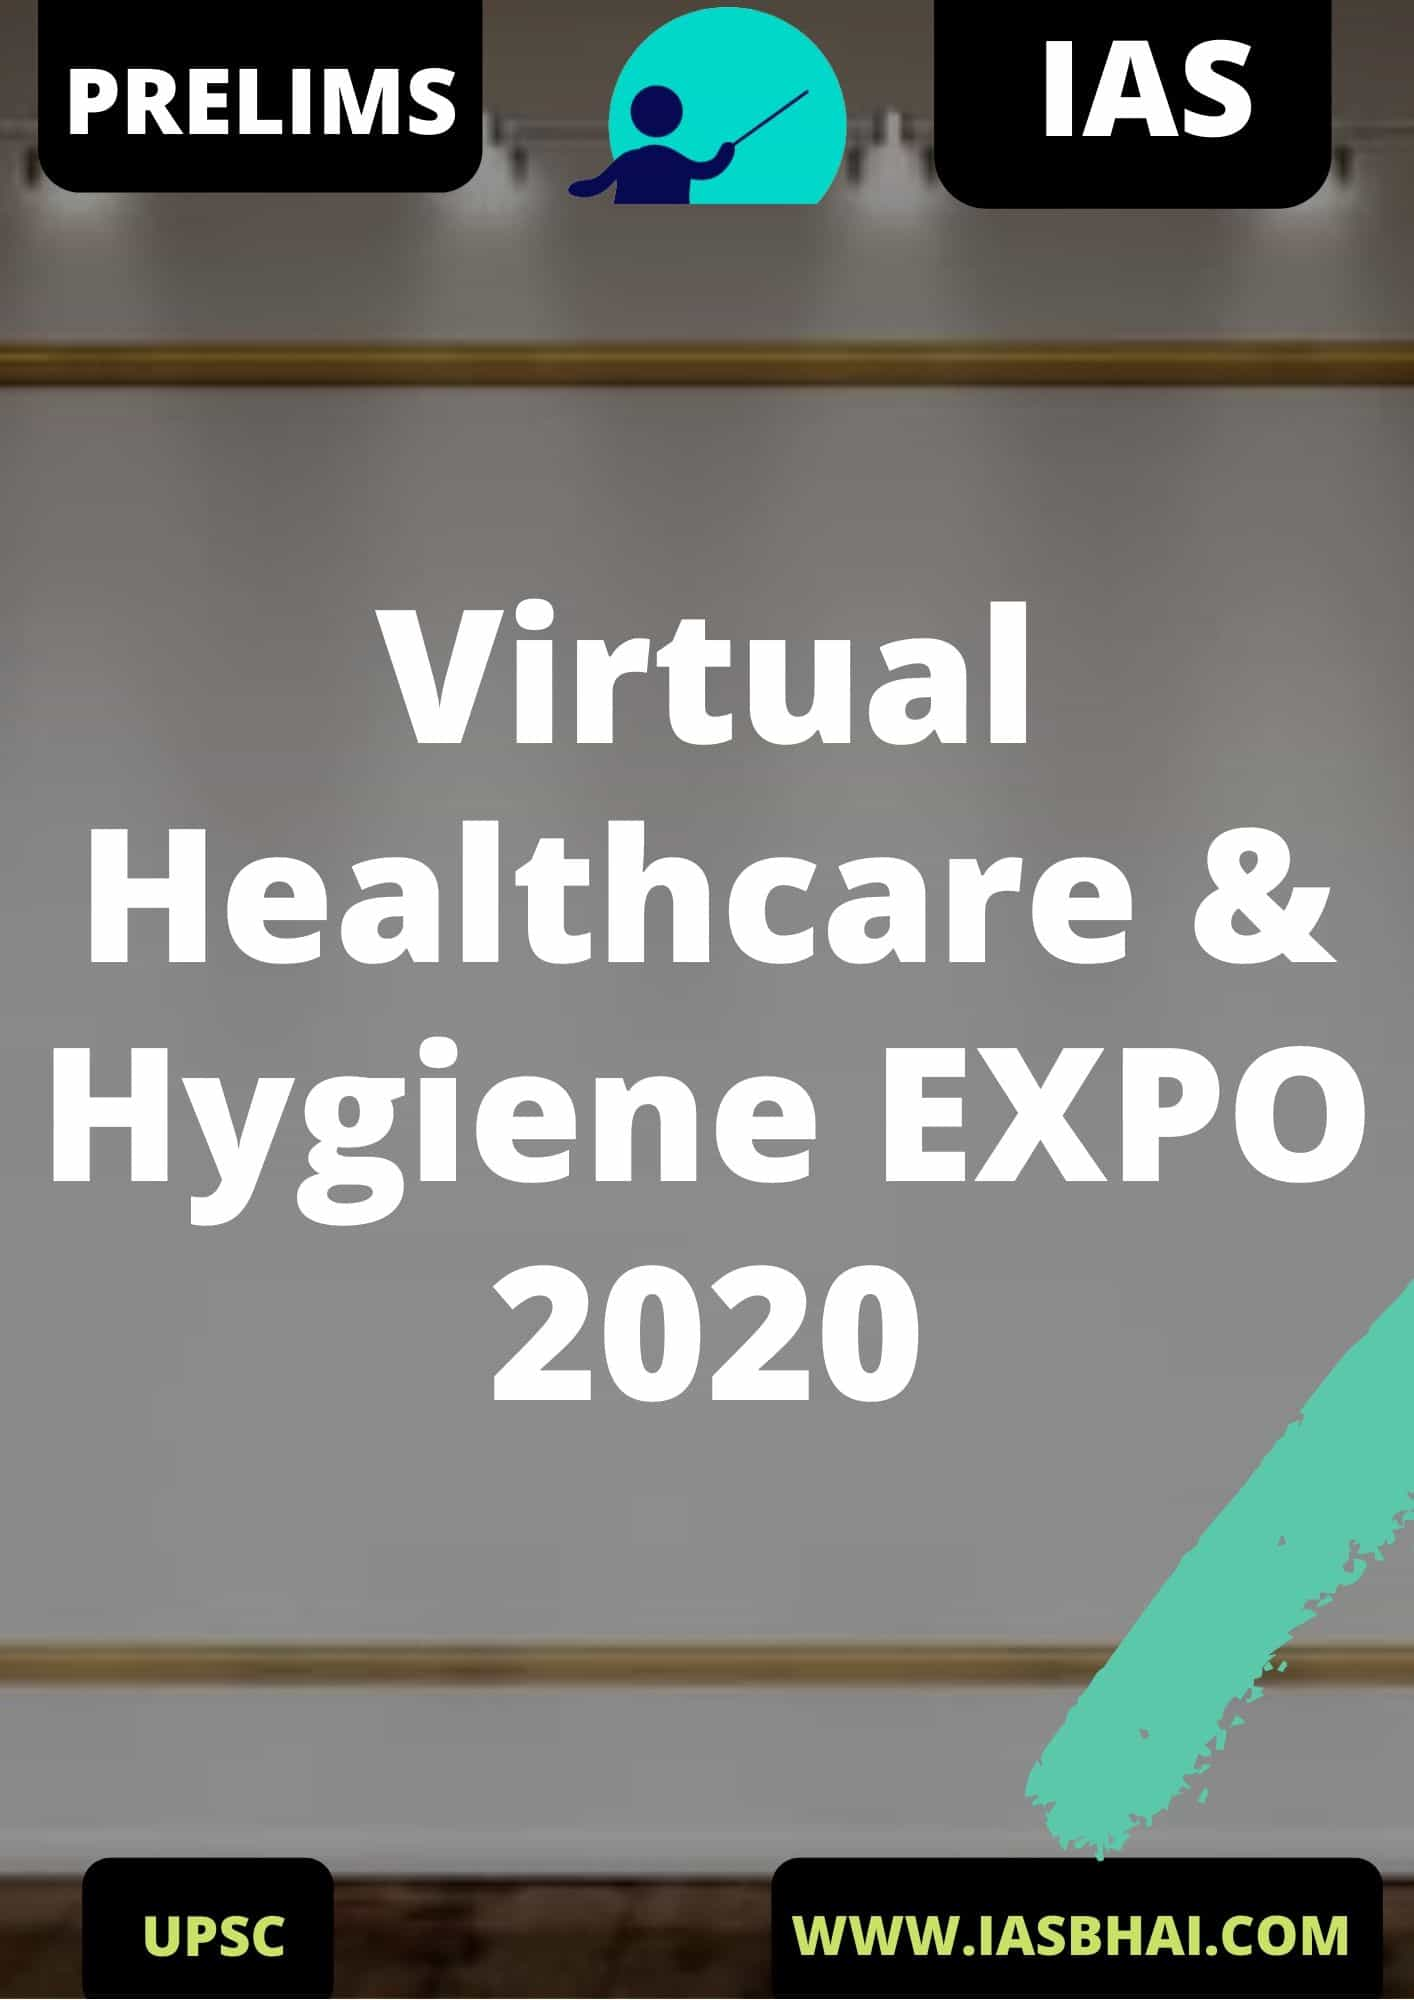 Virtual Healthcare & Hygiene EXPO 2020